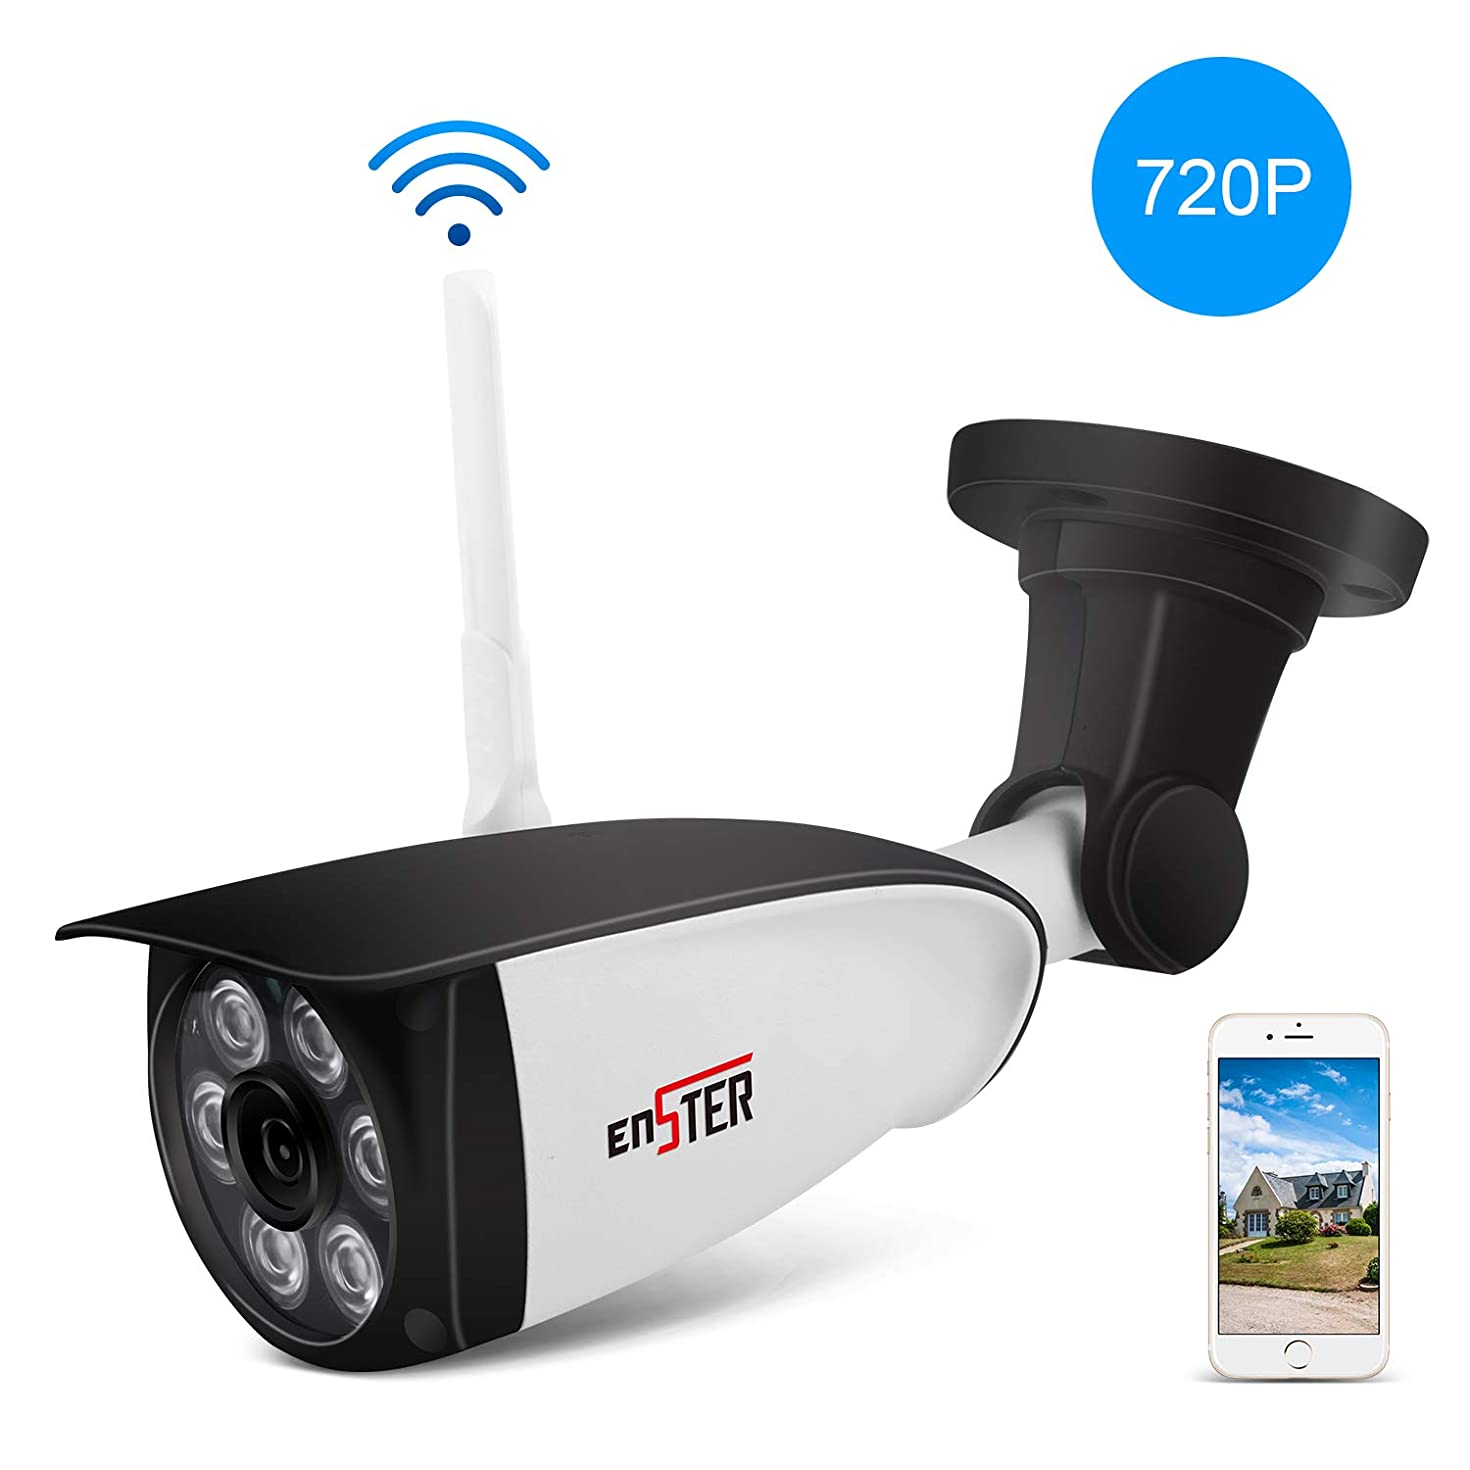 ENSTER Wireless Outdoor Security Camera - 720P Home Outside Surveillance Camera - Motion Detection, Waterproof, Night Vision, Support Max 128GB SD Card -Windows, iOS, Android Compatibility